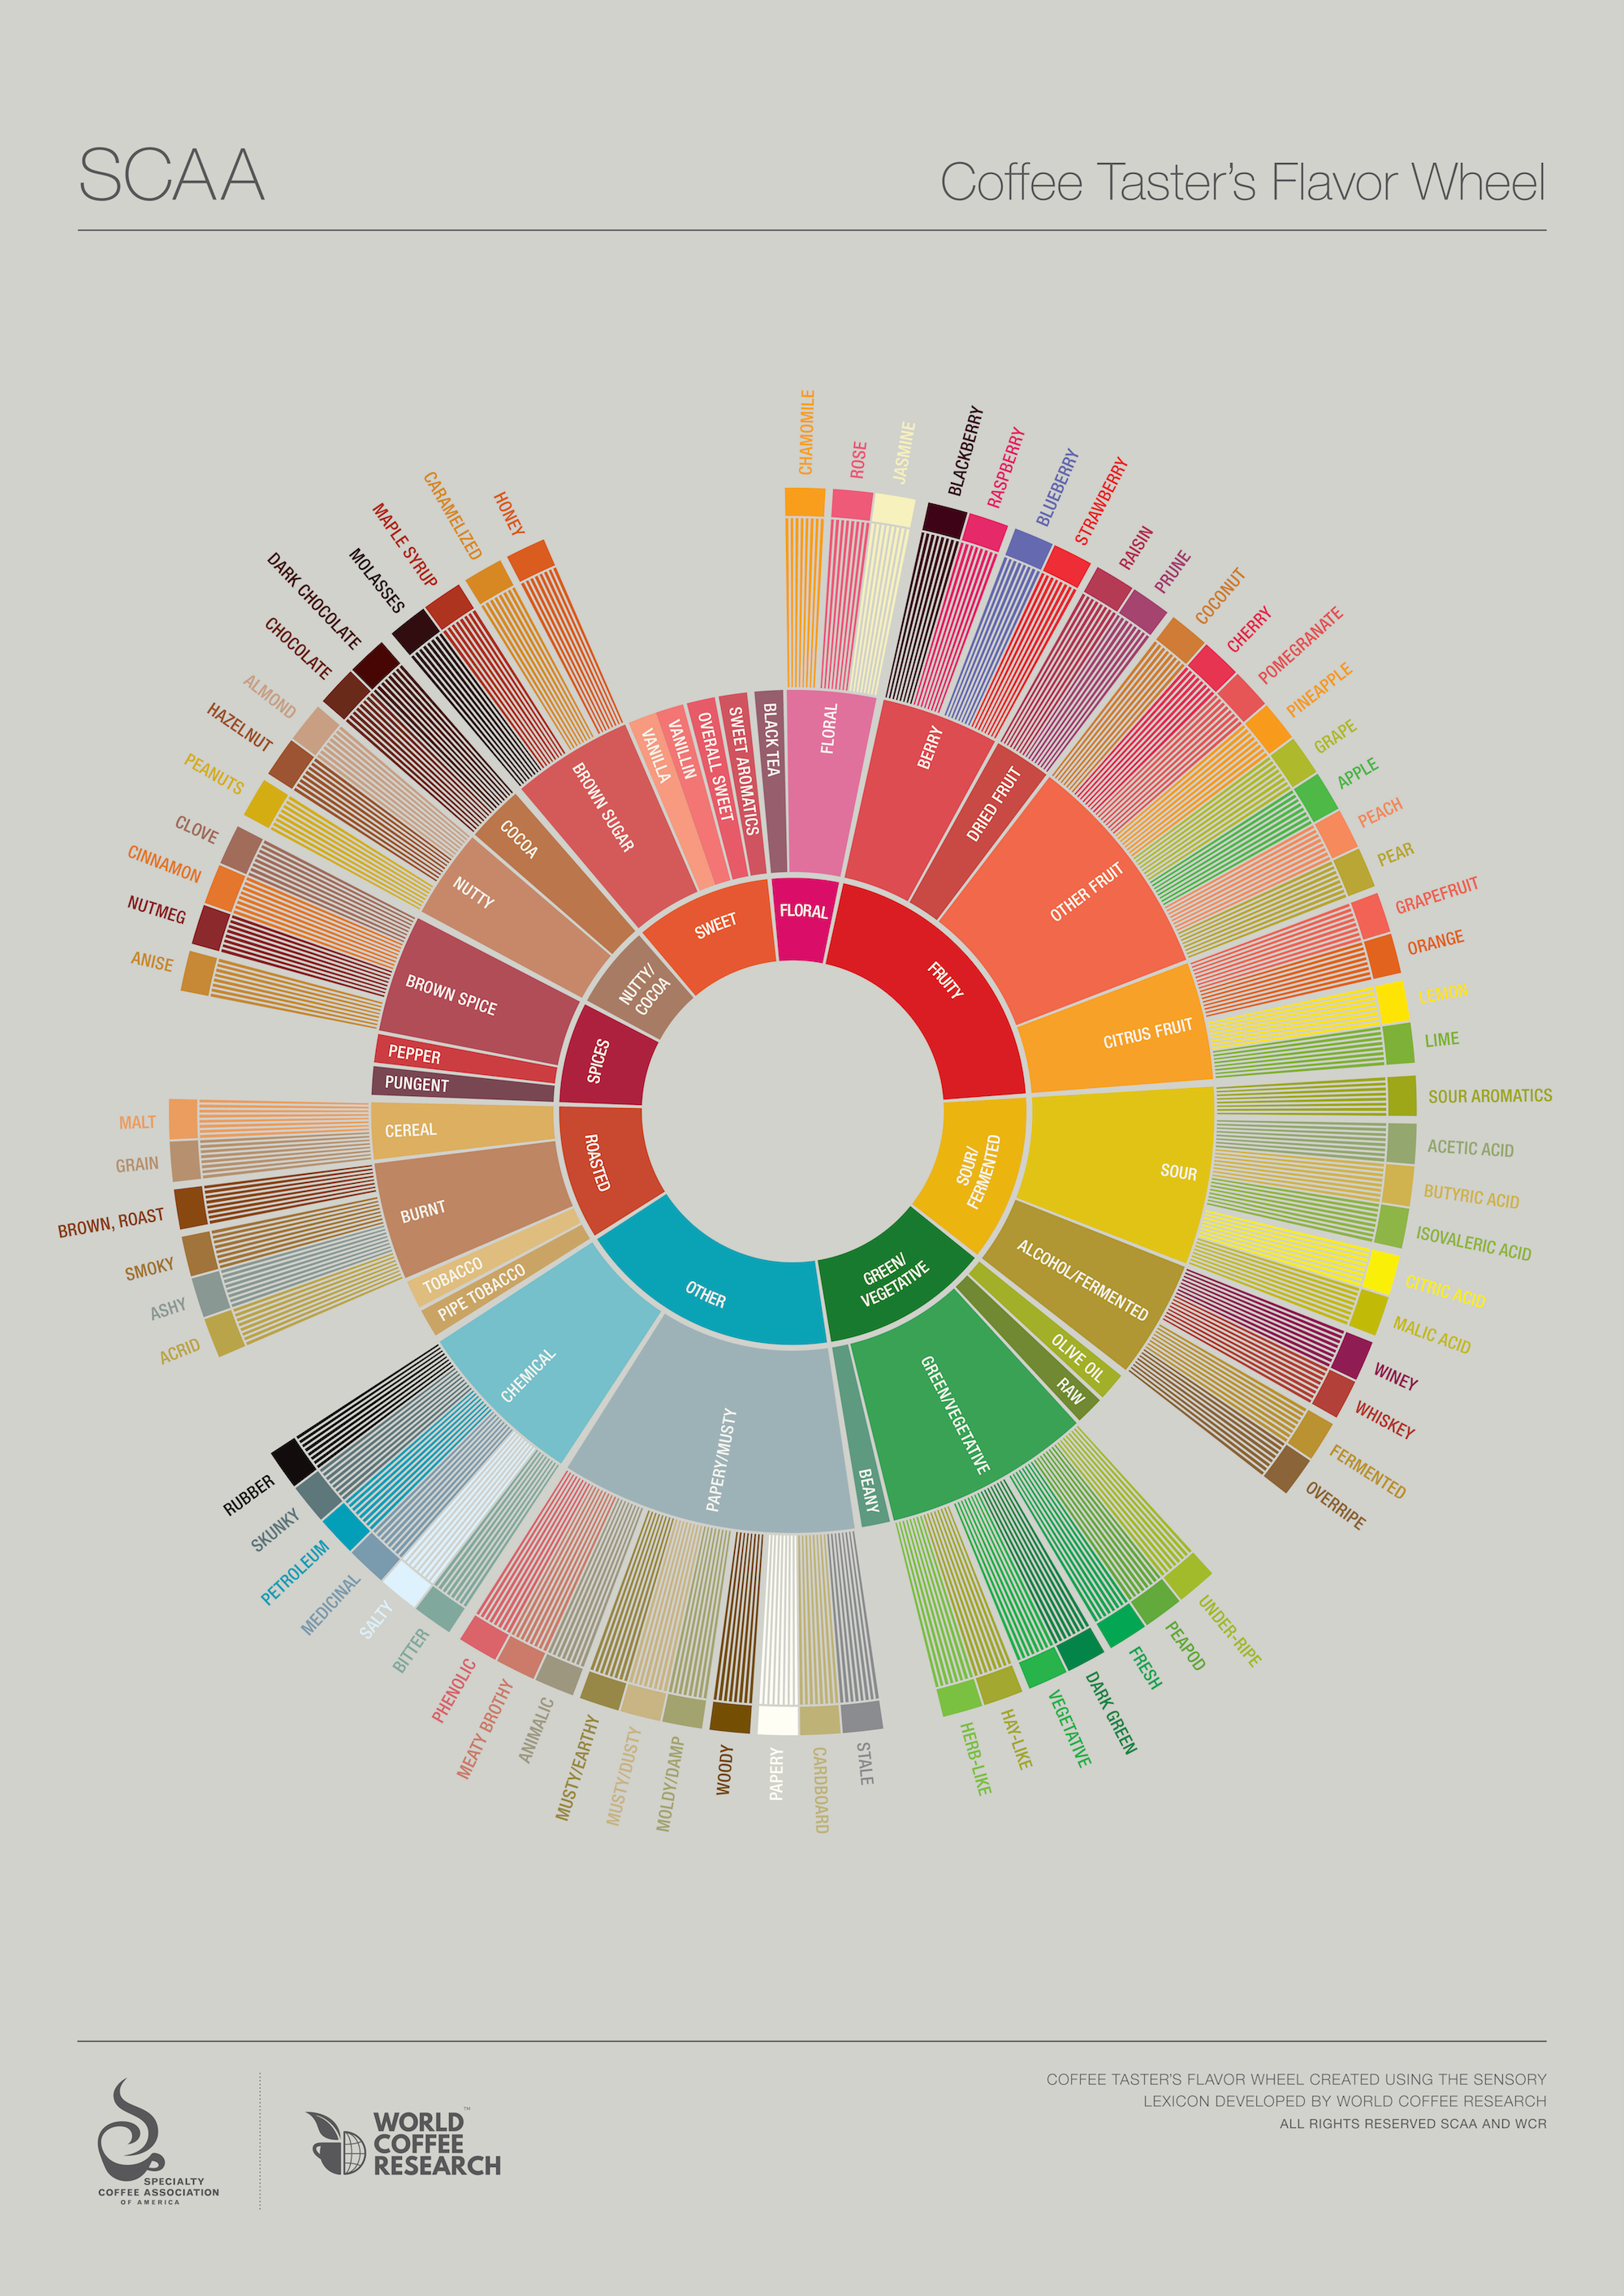 SCAA Coffee Flavor Wheel